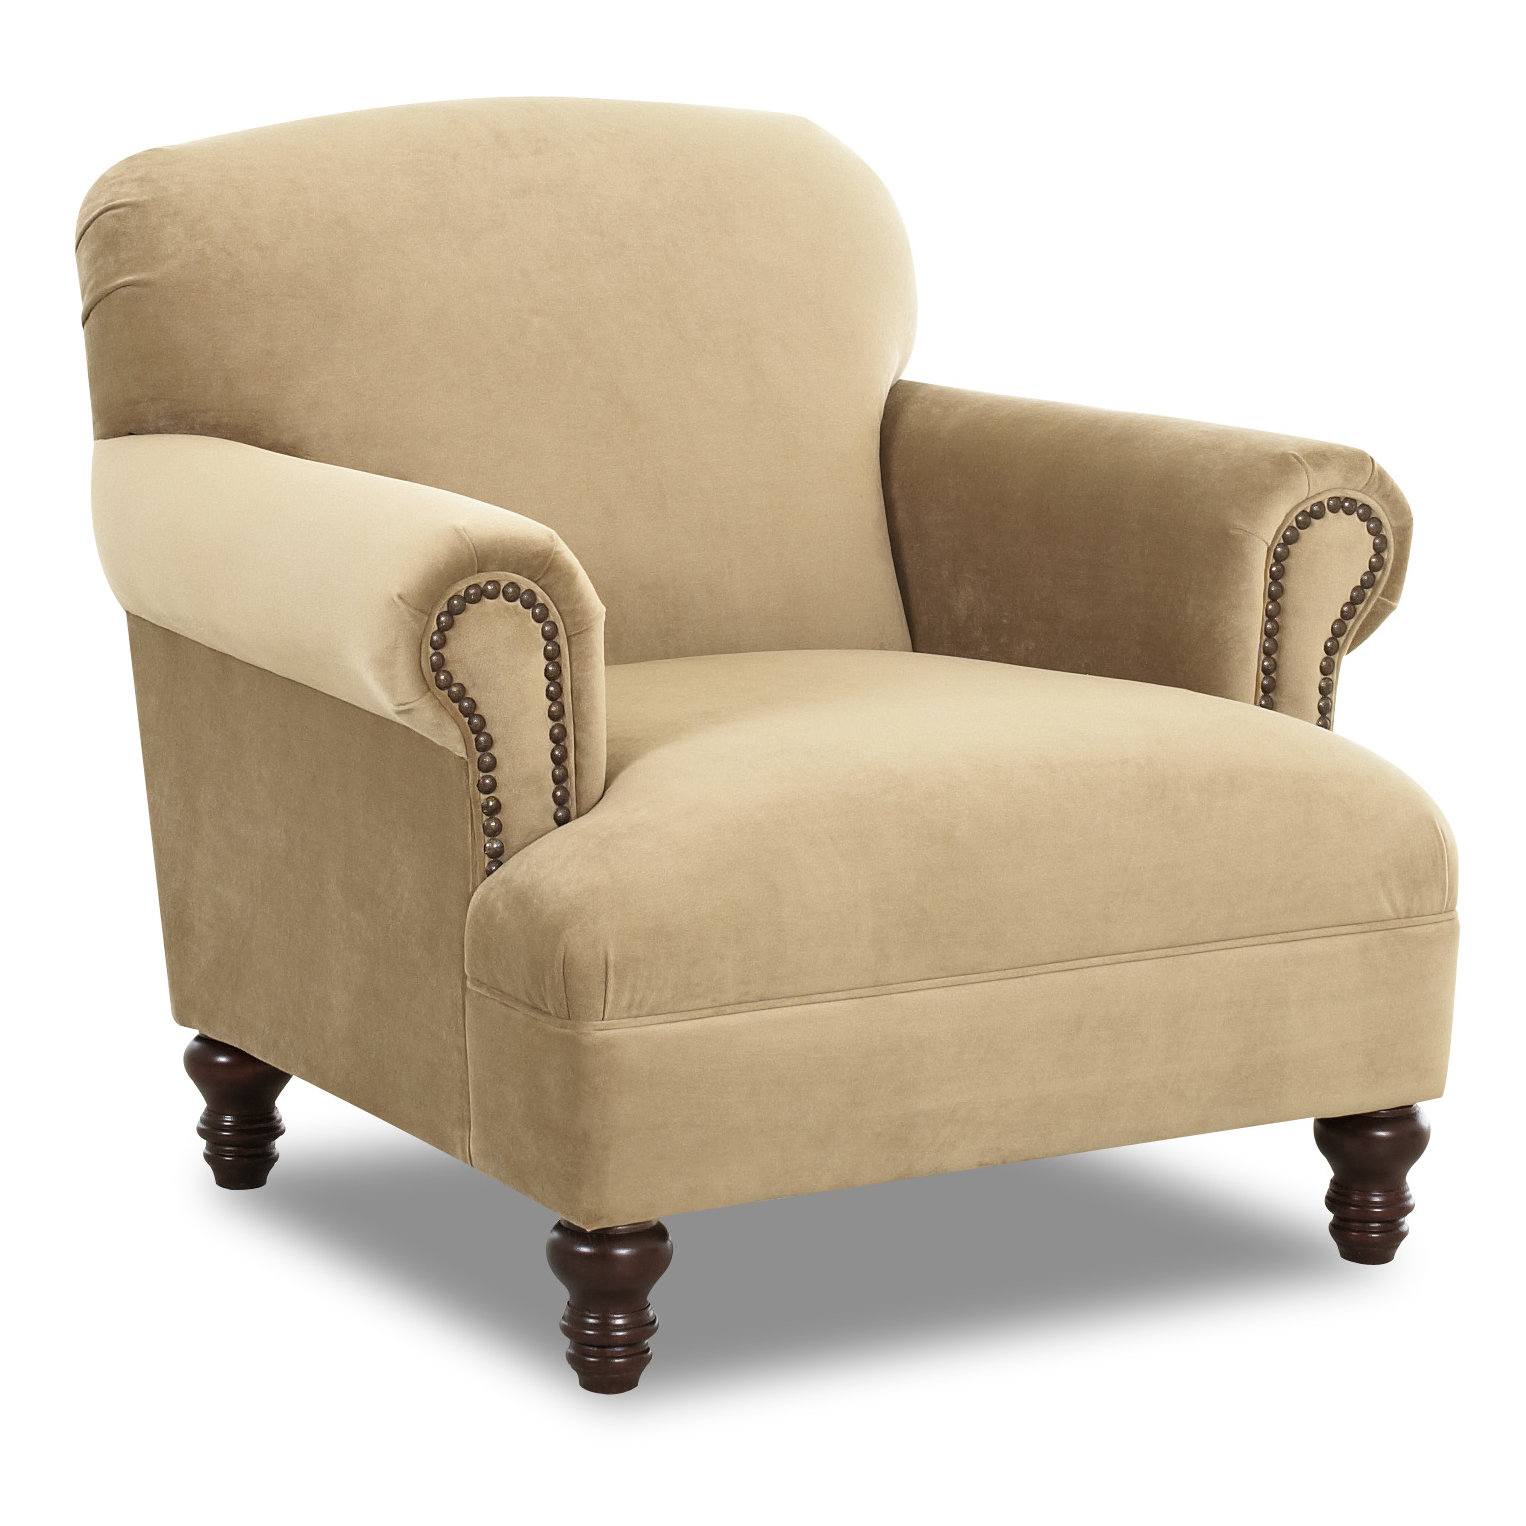 Klaussner Furniture Bailey Armchair & Reviews | Wayfair In Bailey Angled Track Arm Swivel Gliders (View 4 of 25)